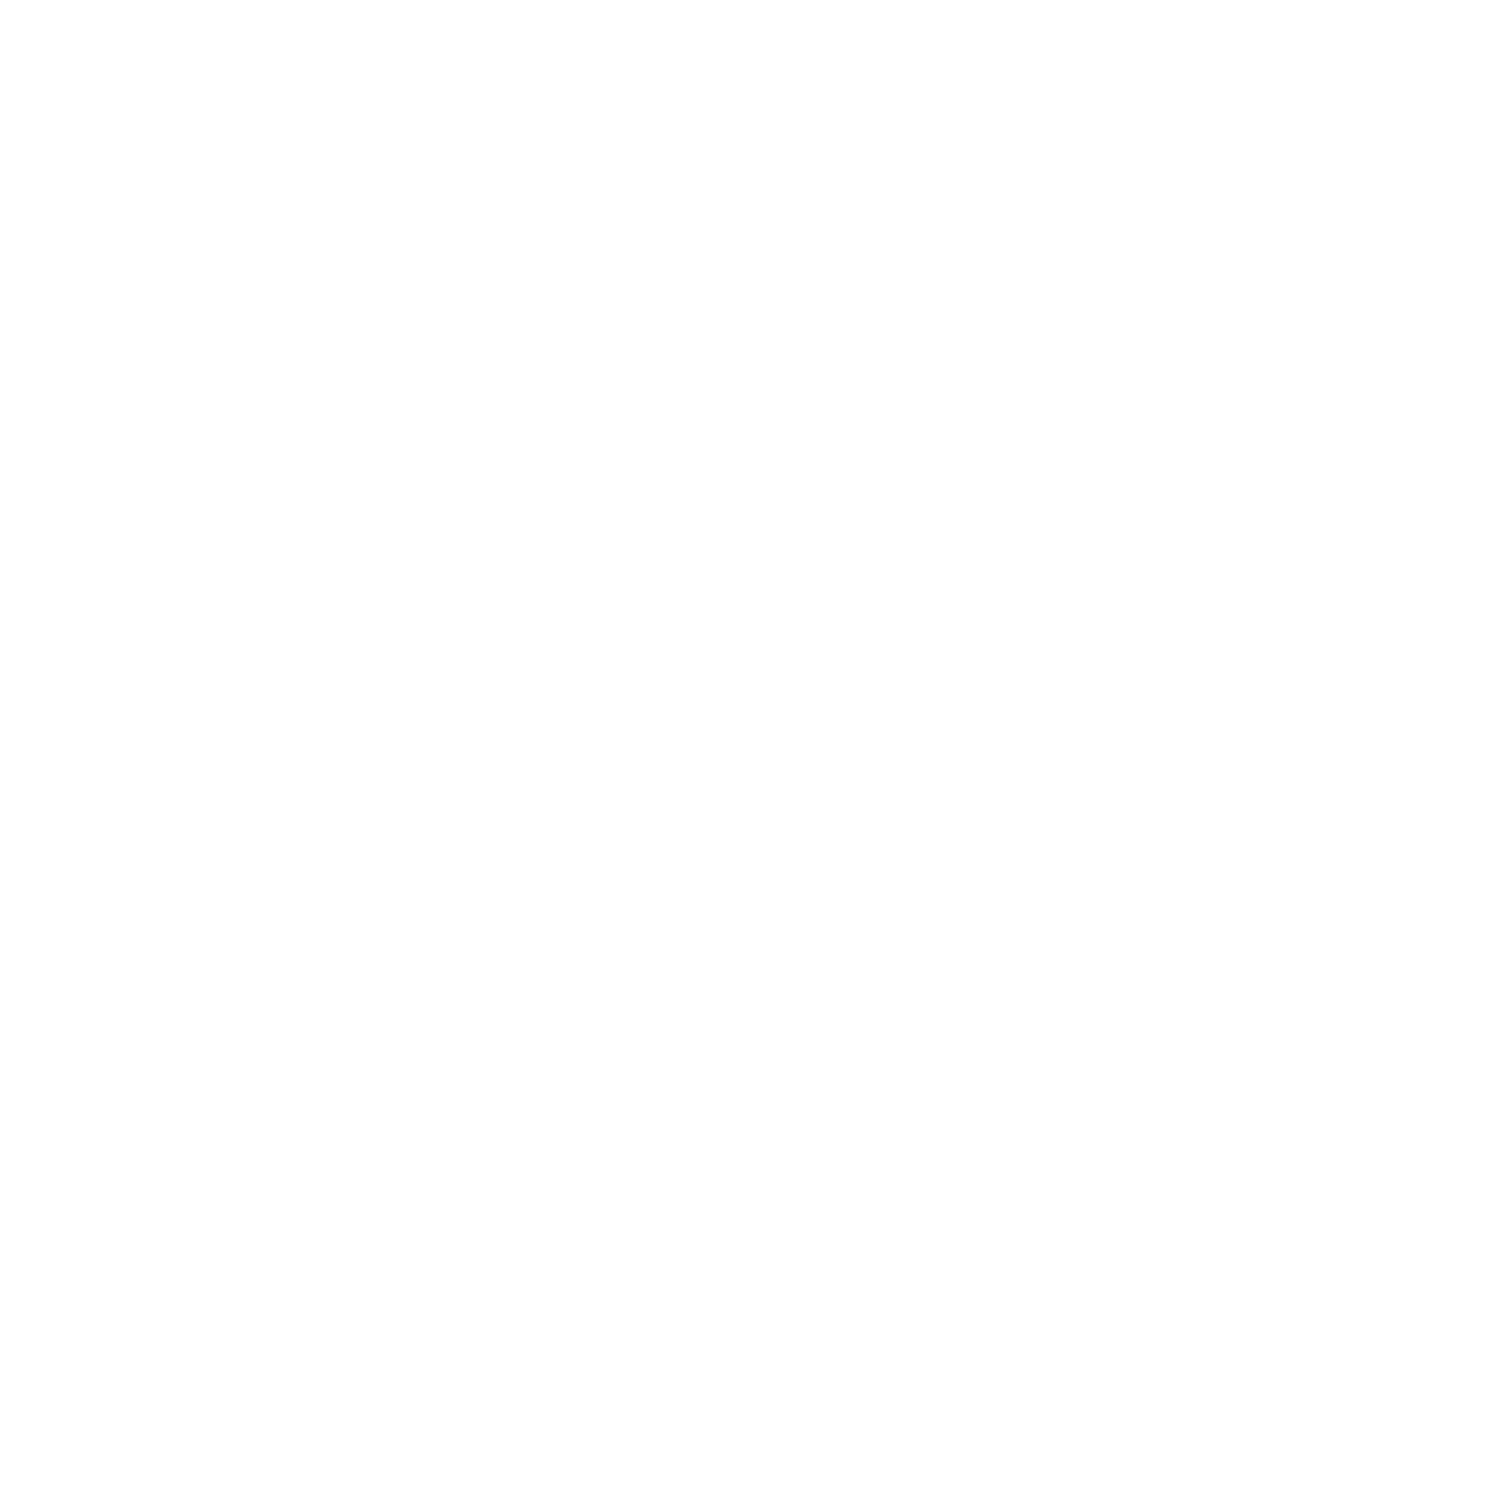 Old World Coffee Lab | Specialty Coffee Shop Reno